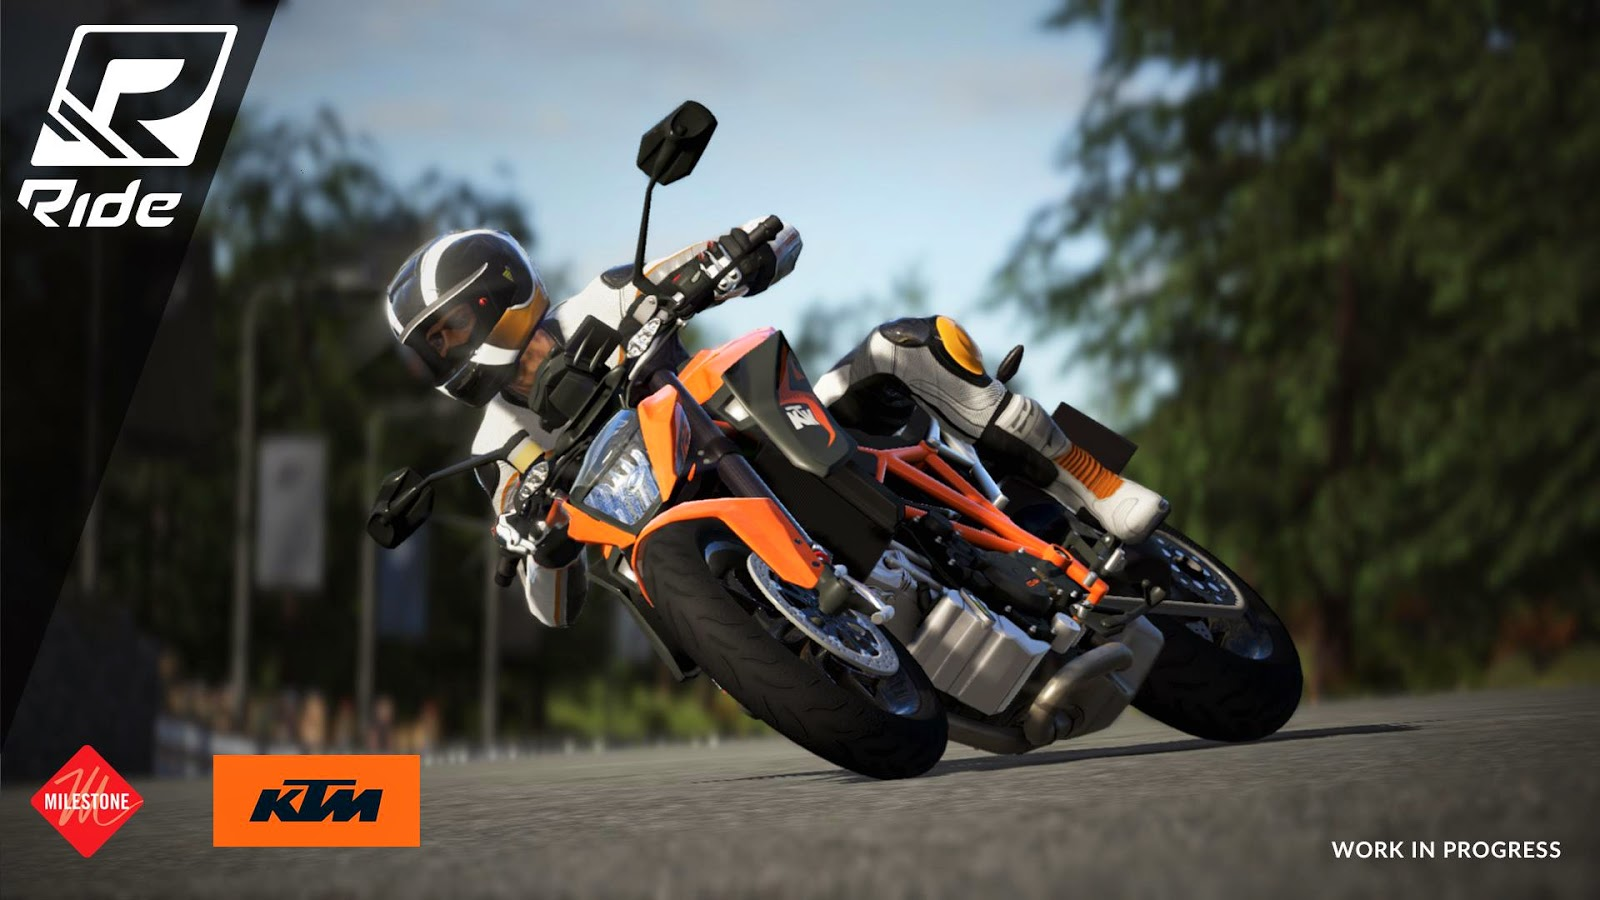 Bike Games 2015 Ride is a new bike game